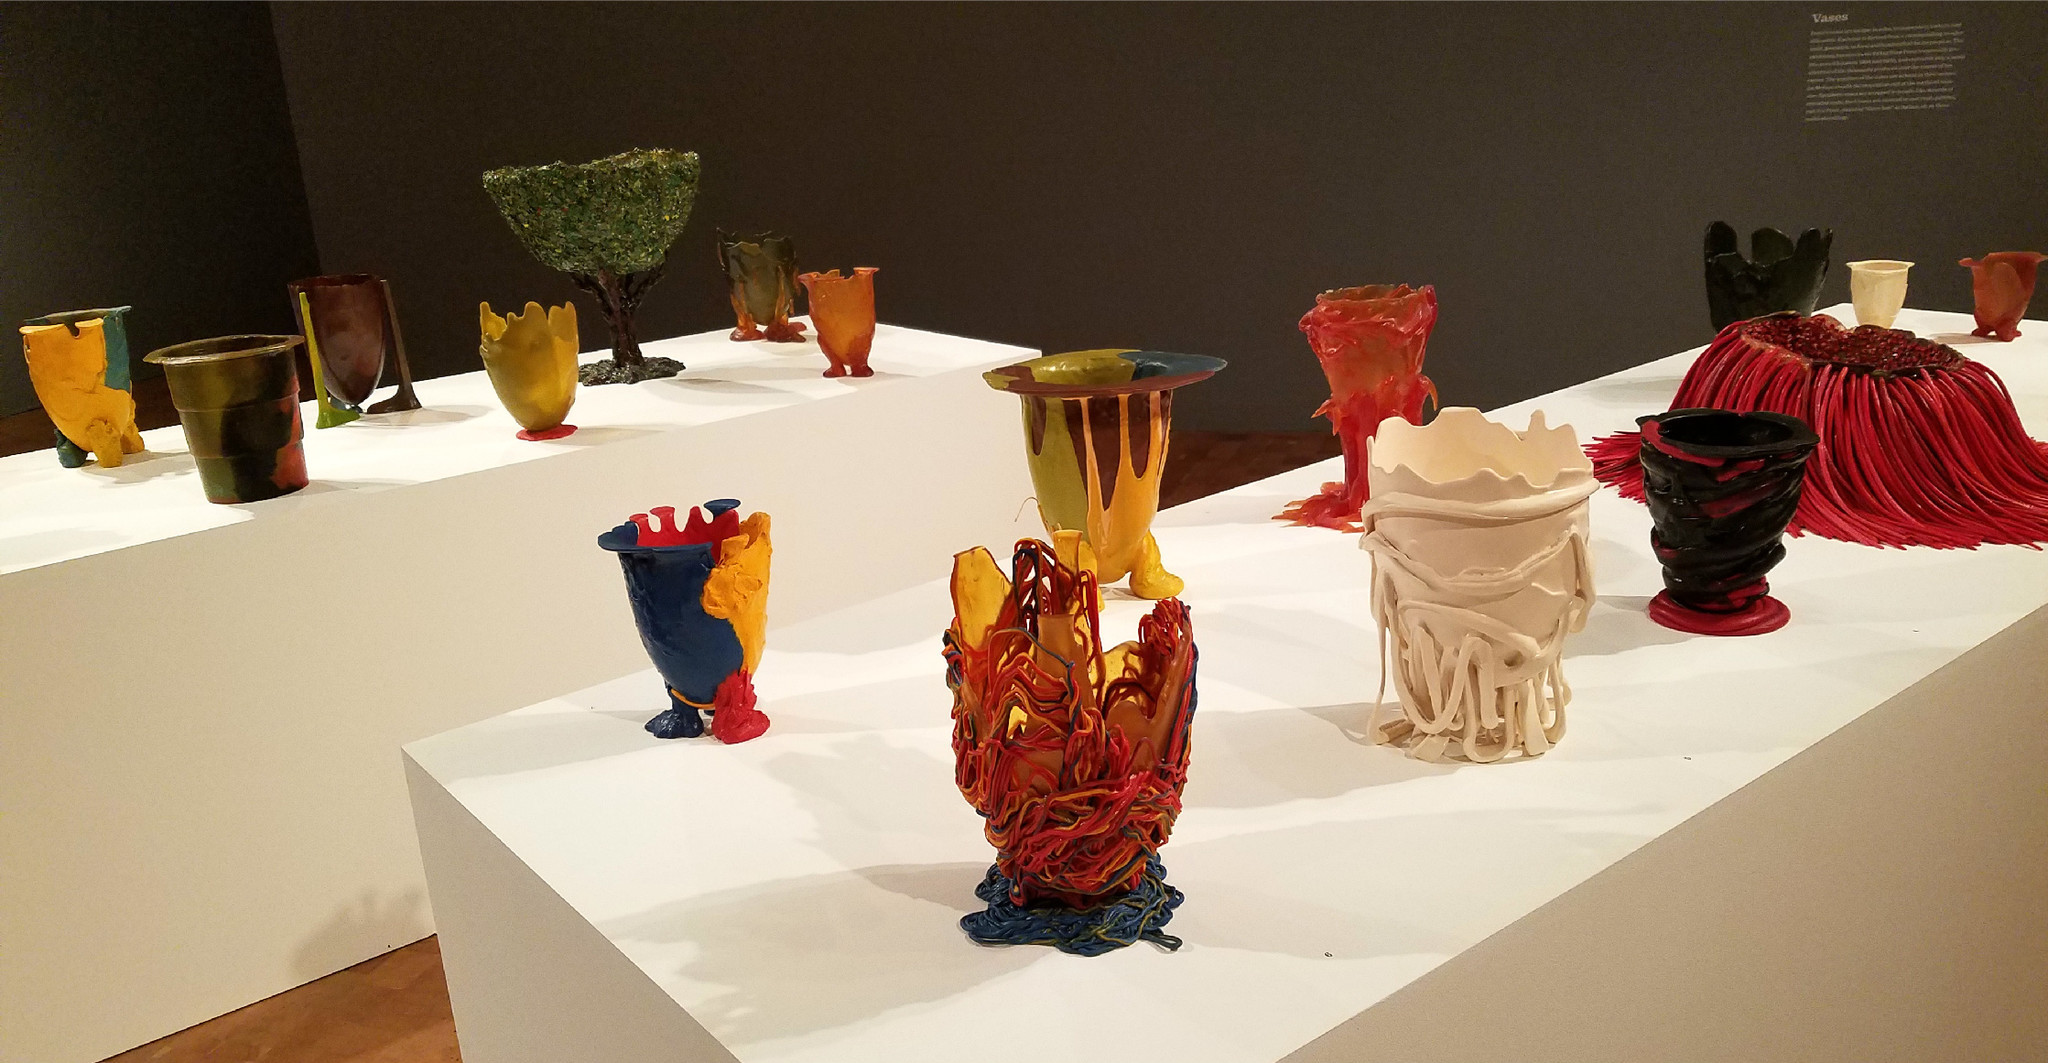 All but five of 39 vessels in MOCA's Gaetano Pesce show come from the co-curator's private collection.